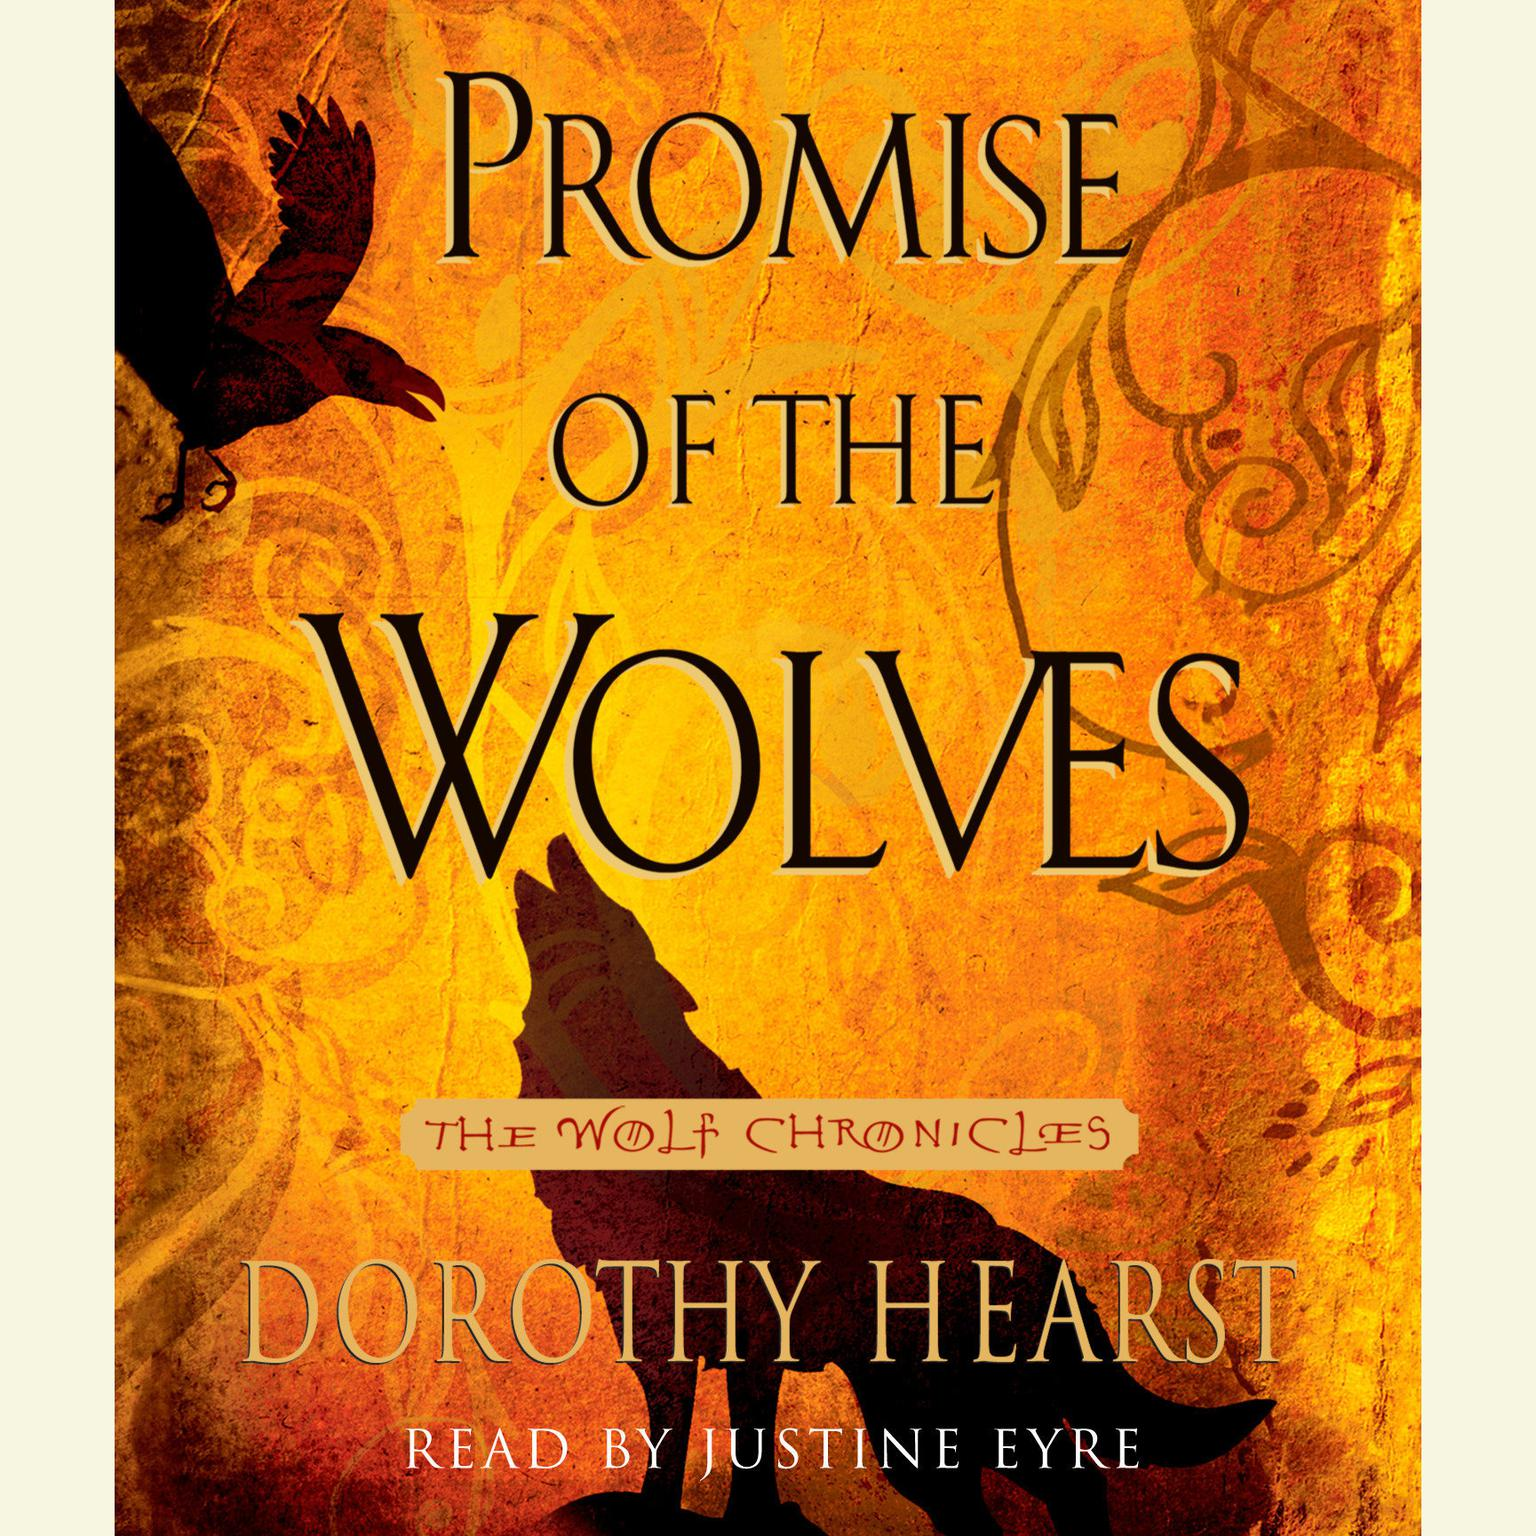 Printable Promise of the Wolves Audiobook Cover Art